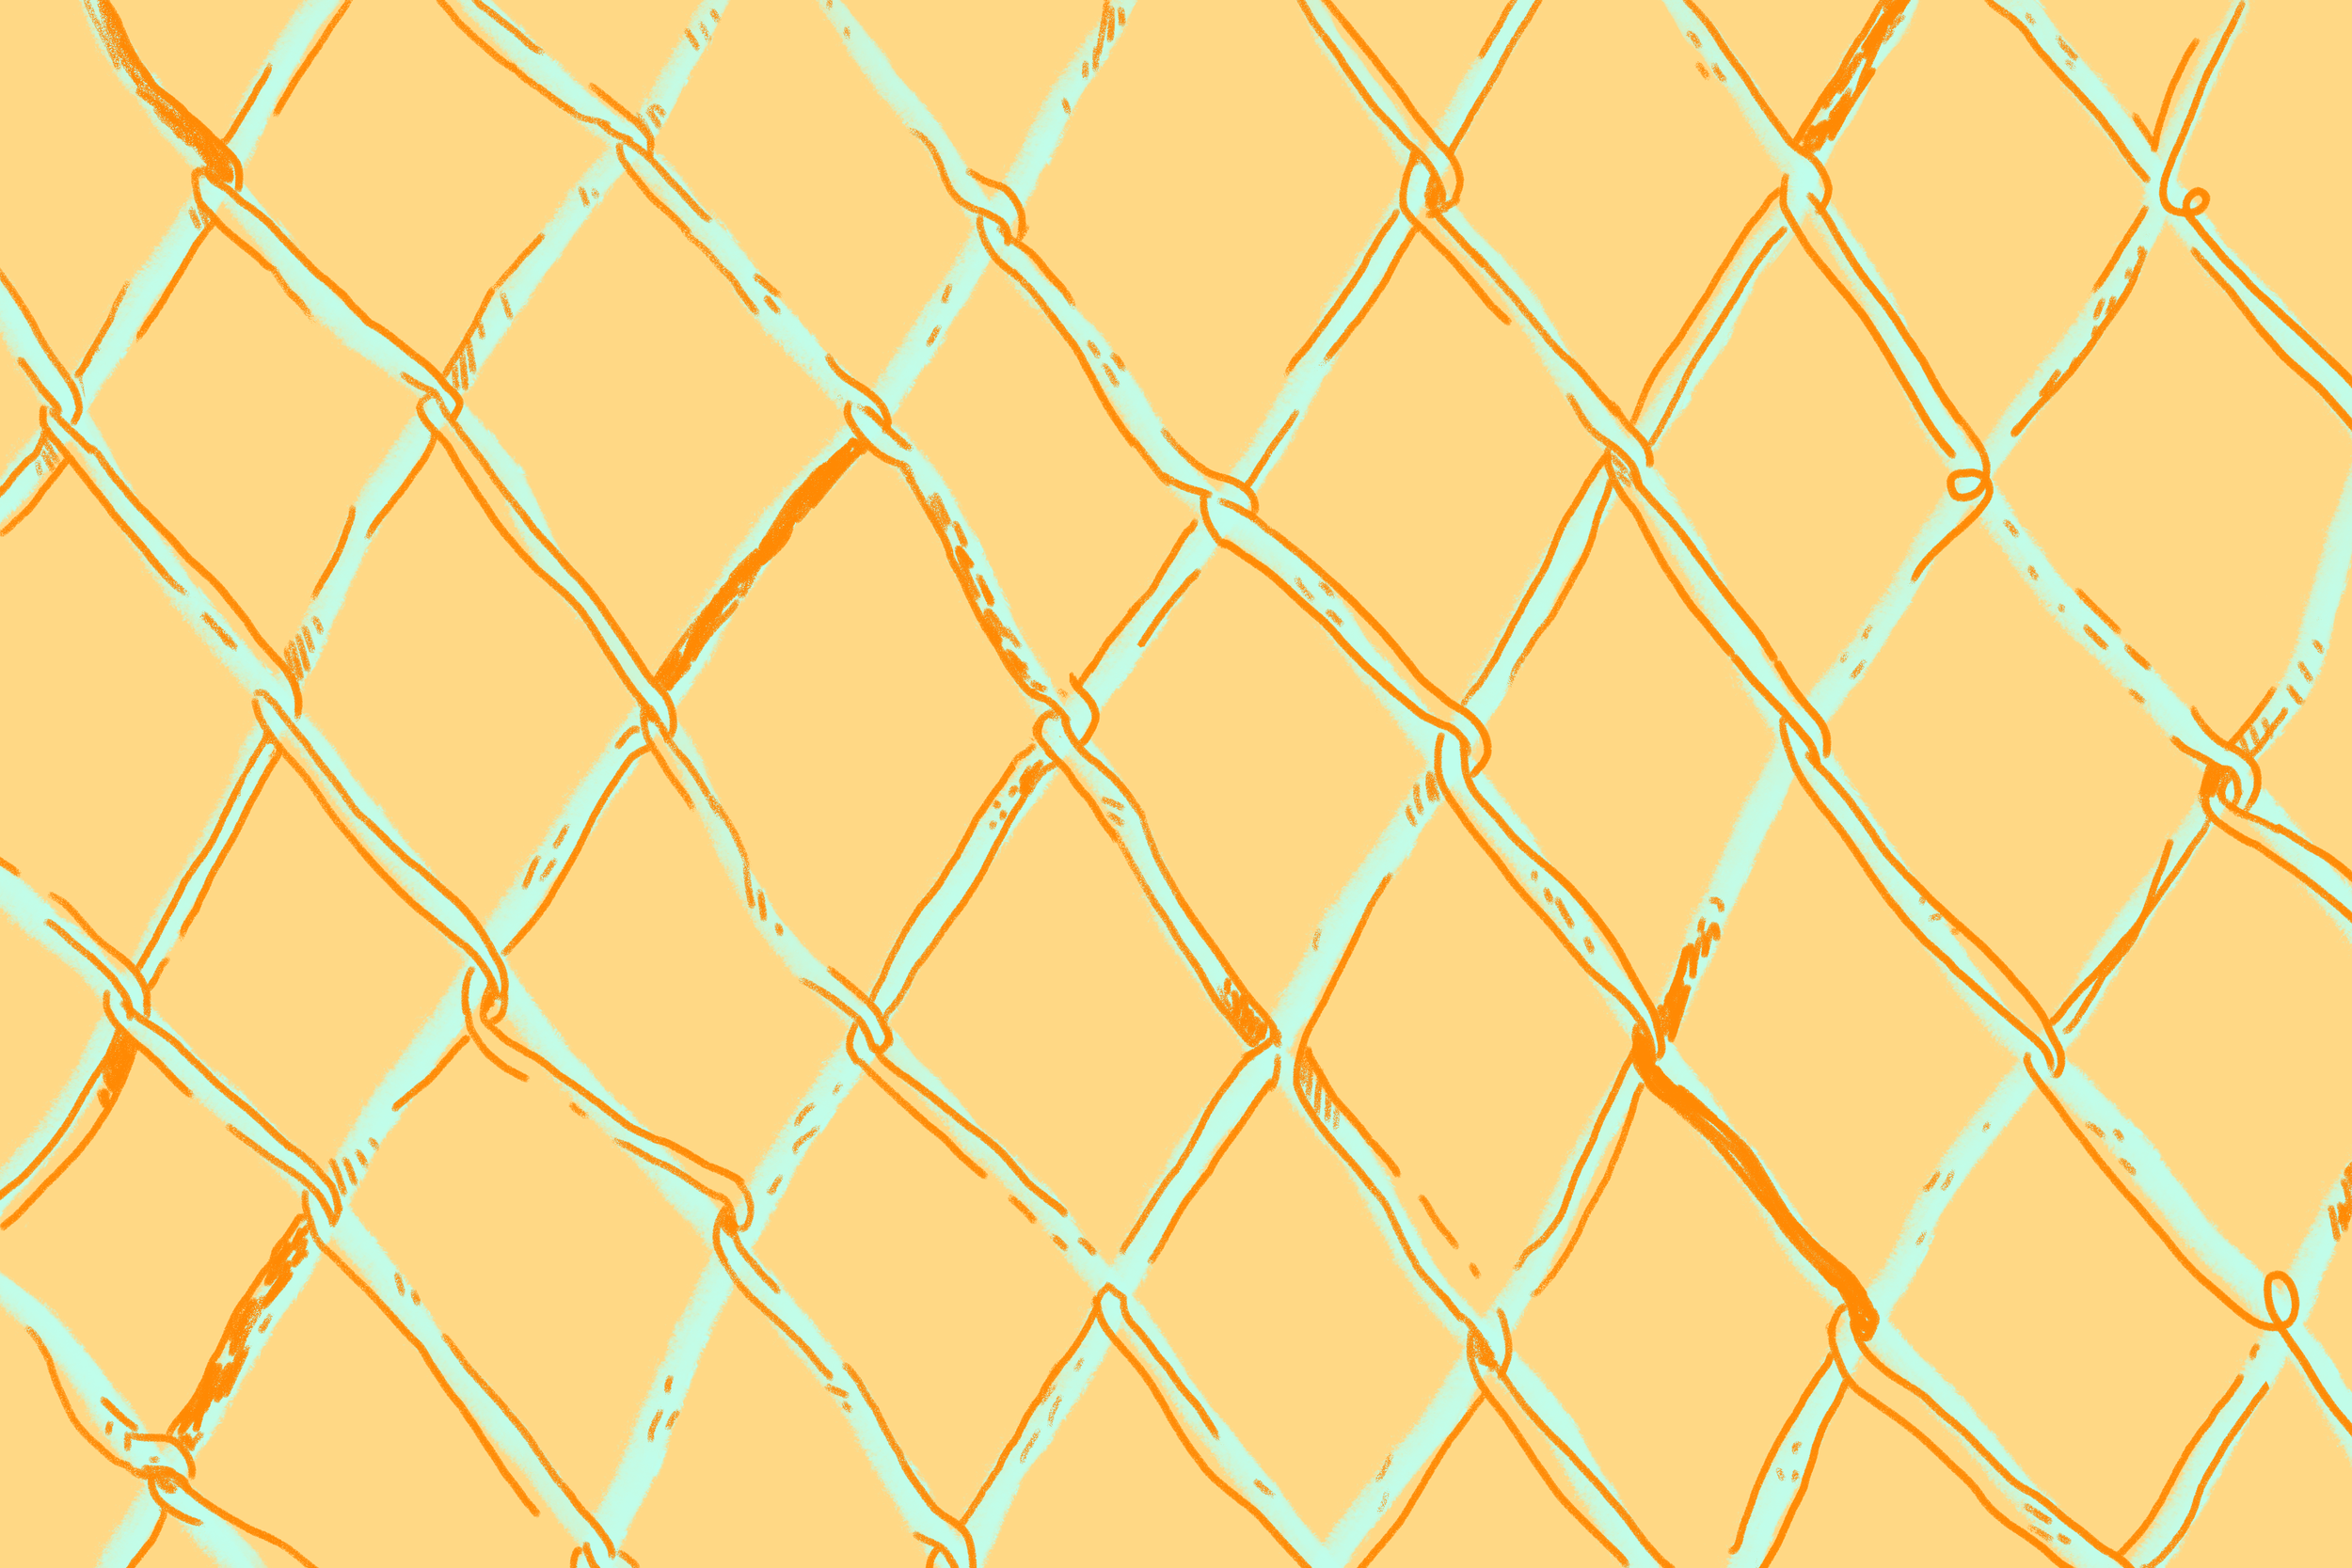 chain link fence_Unah Denight